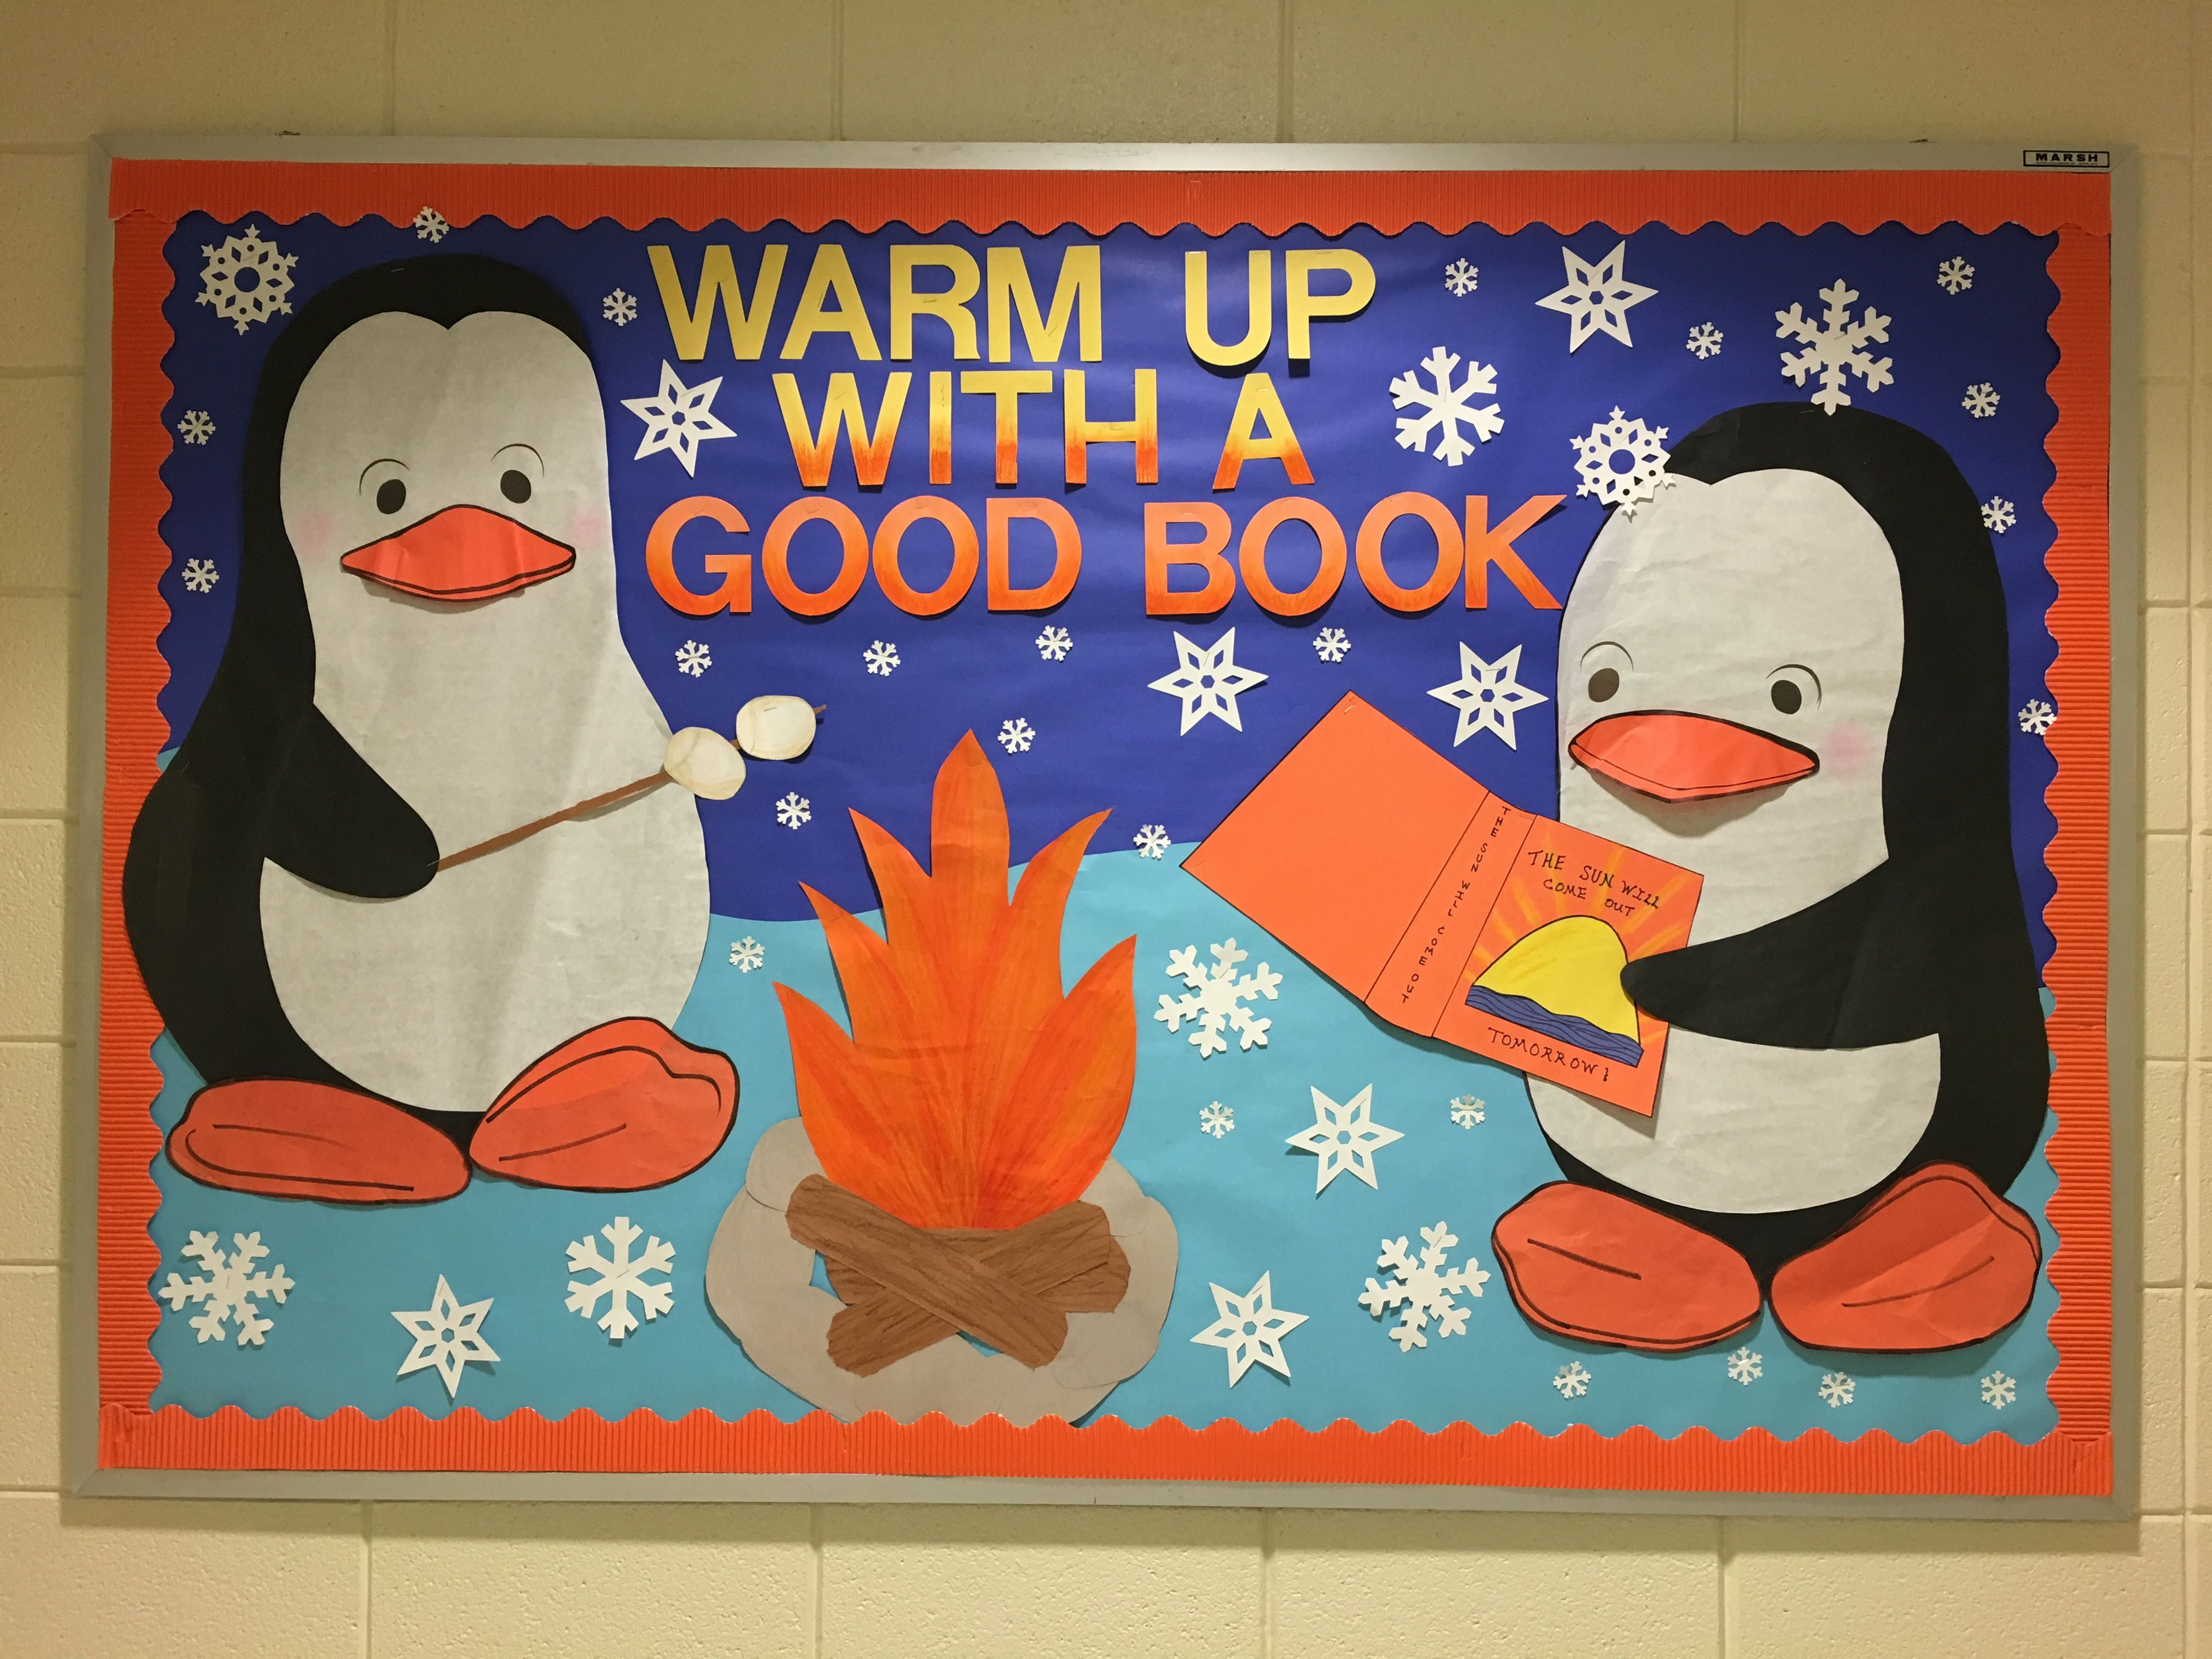 Classroom Warm Up Ideas : Winter school library bulletin board warm up with a good